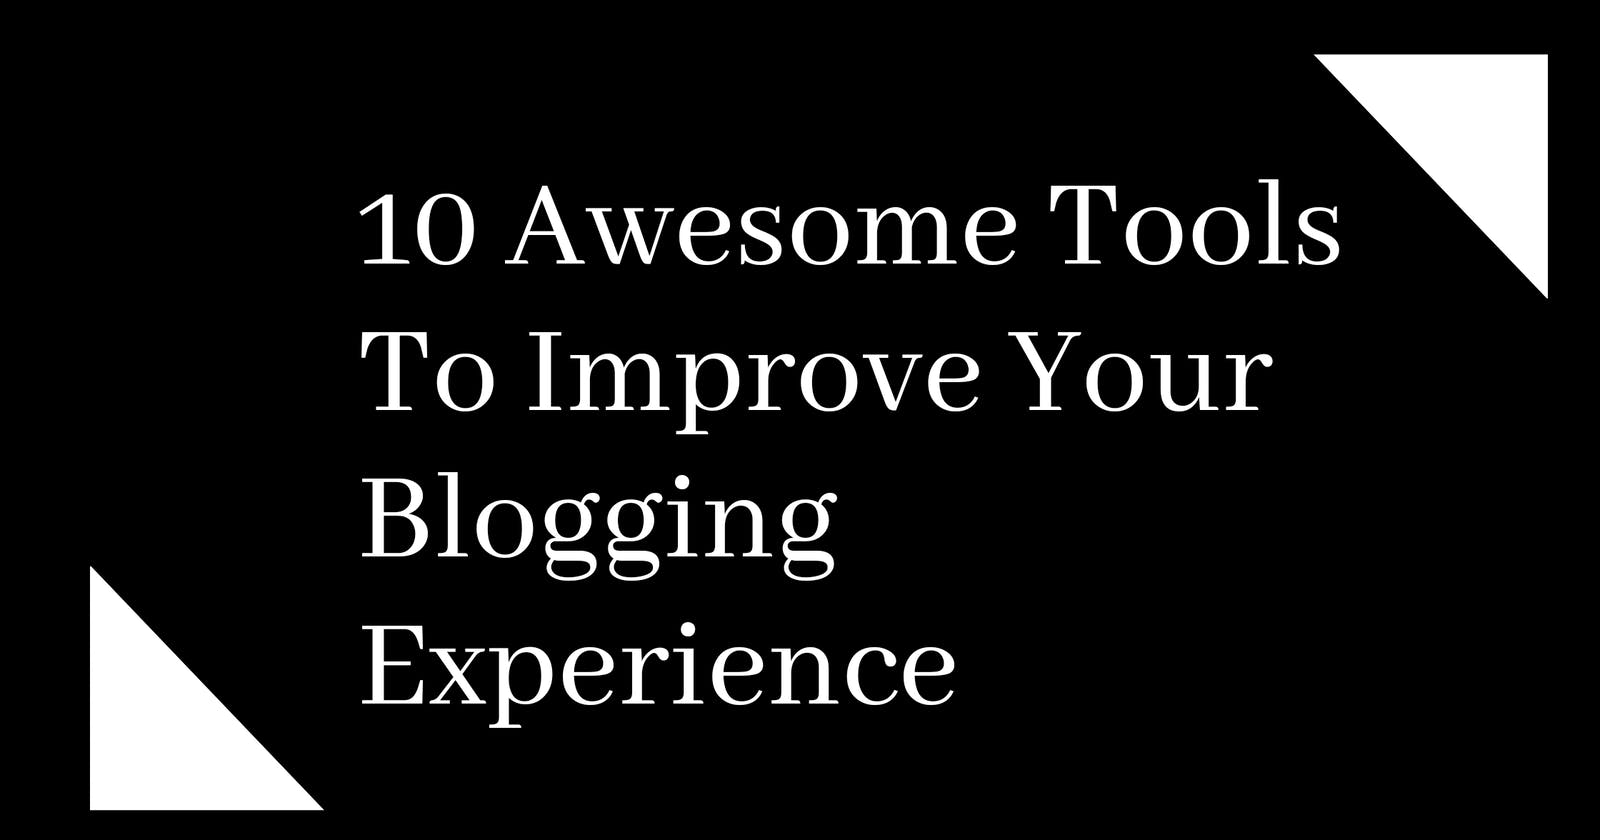 10 Awesome Tools To Improve Your Blogging Experience